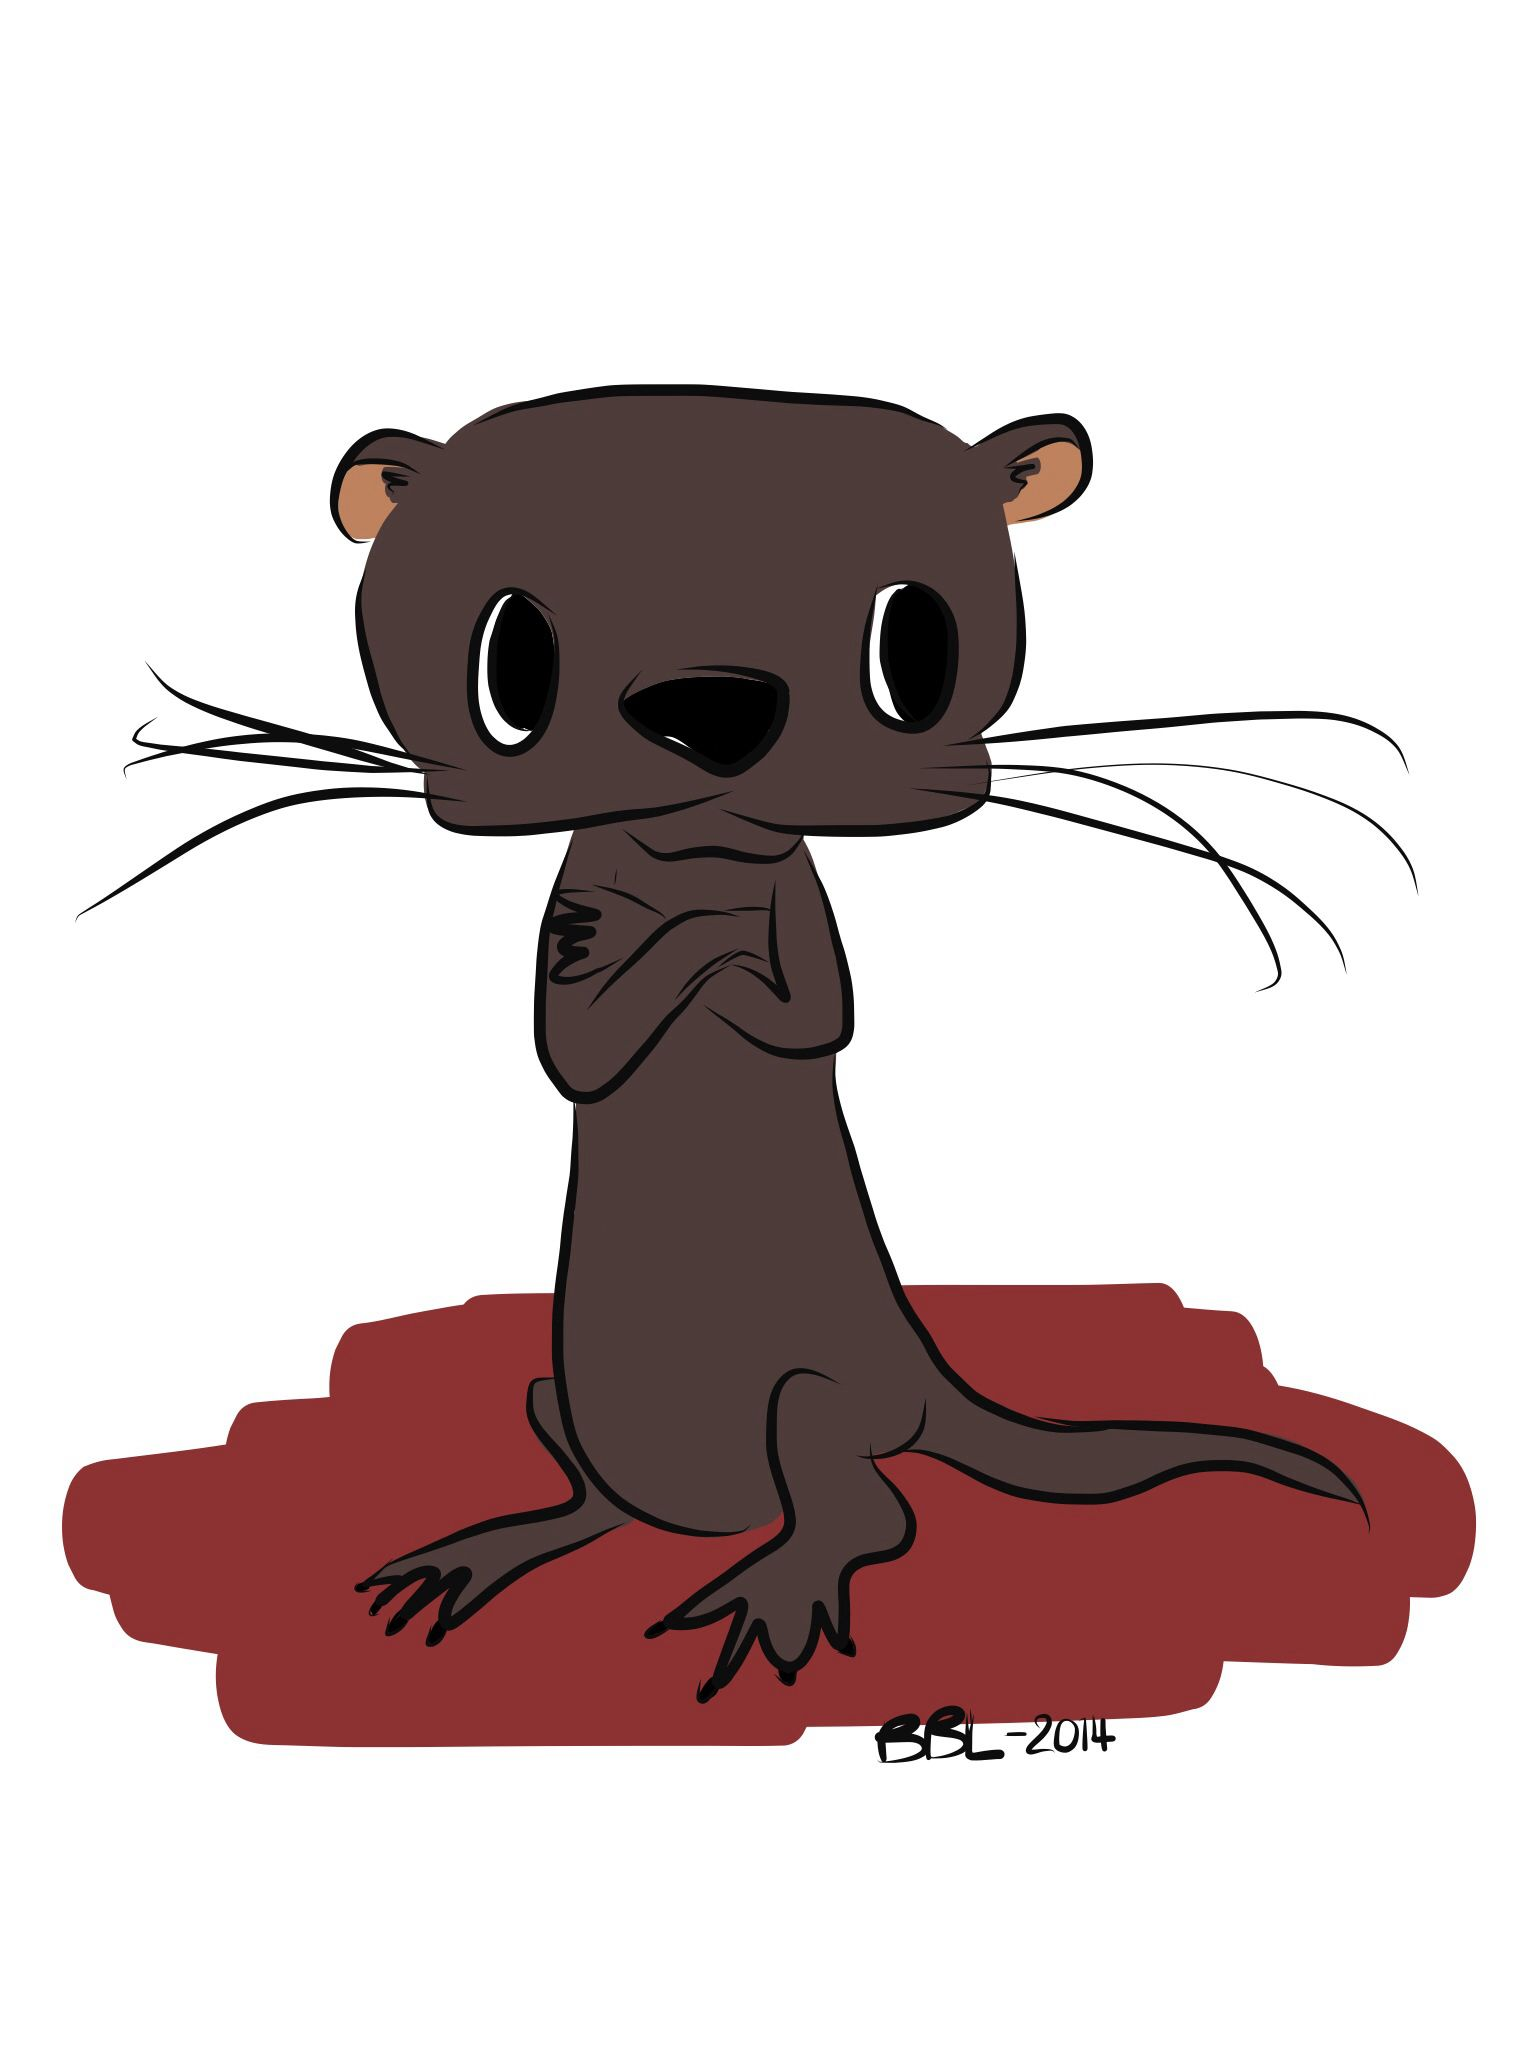 #loutre #otter #dessin #drawing